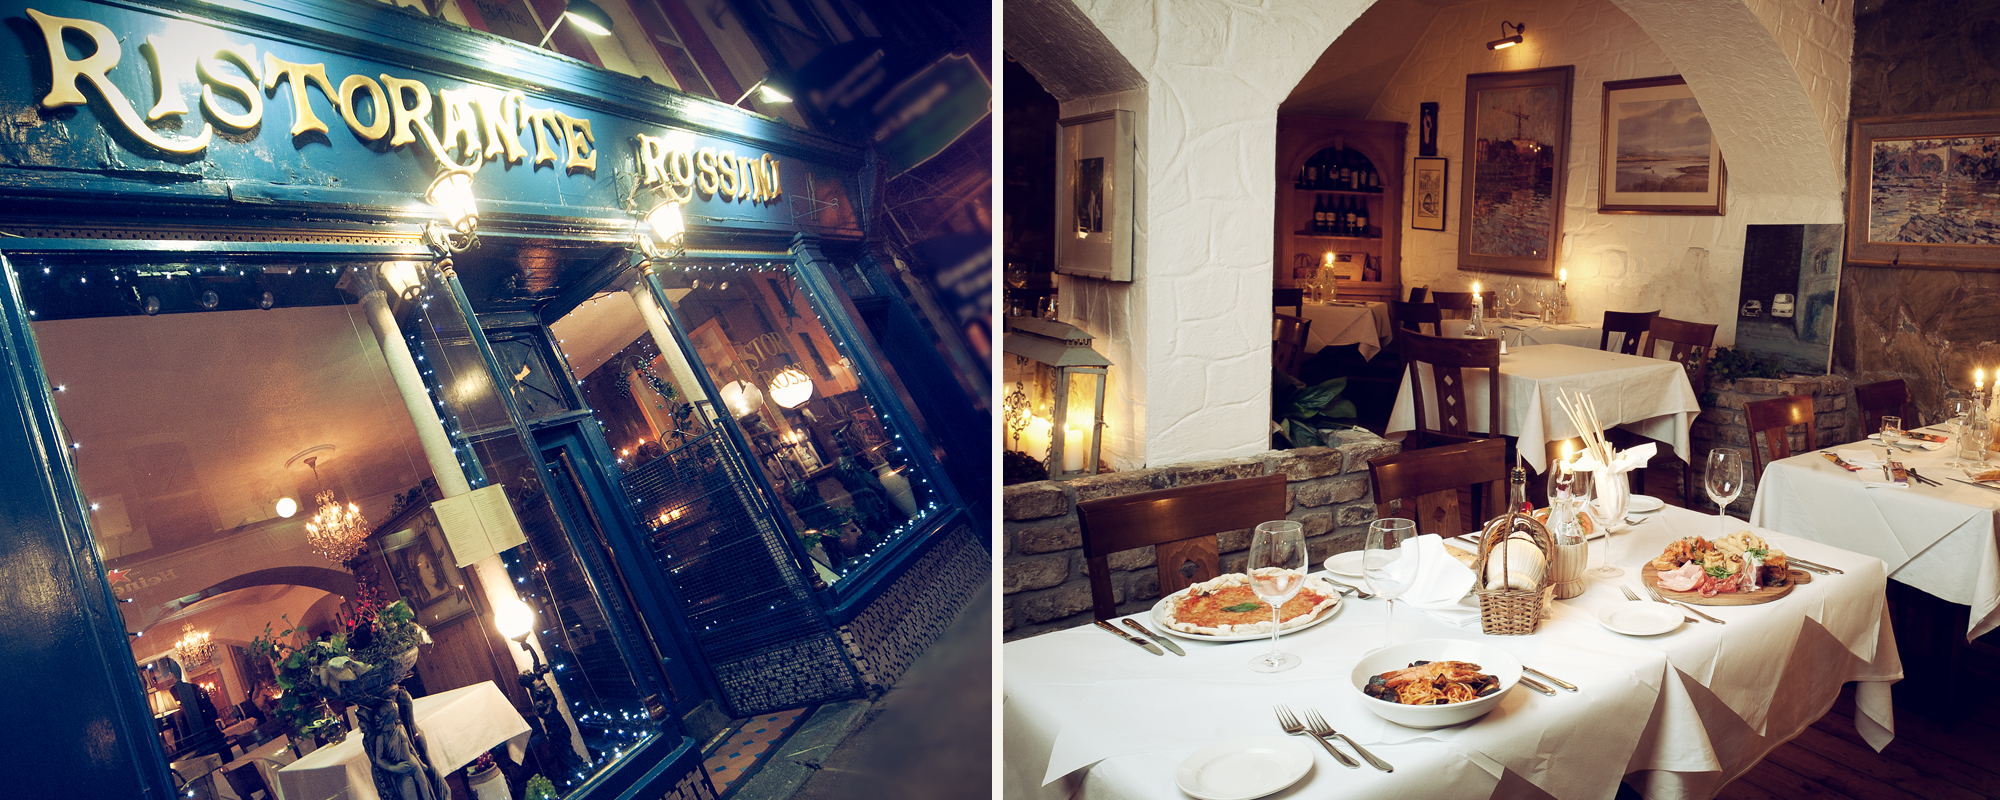 Authentic Italian Restaurant Cork Call 021 427 5818 Or Make Online Reservationmake A Reservation